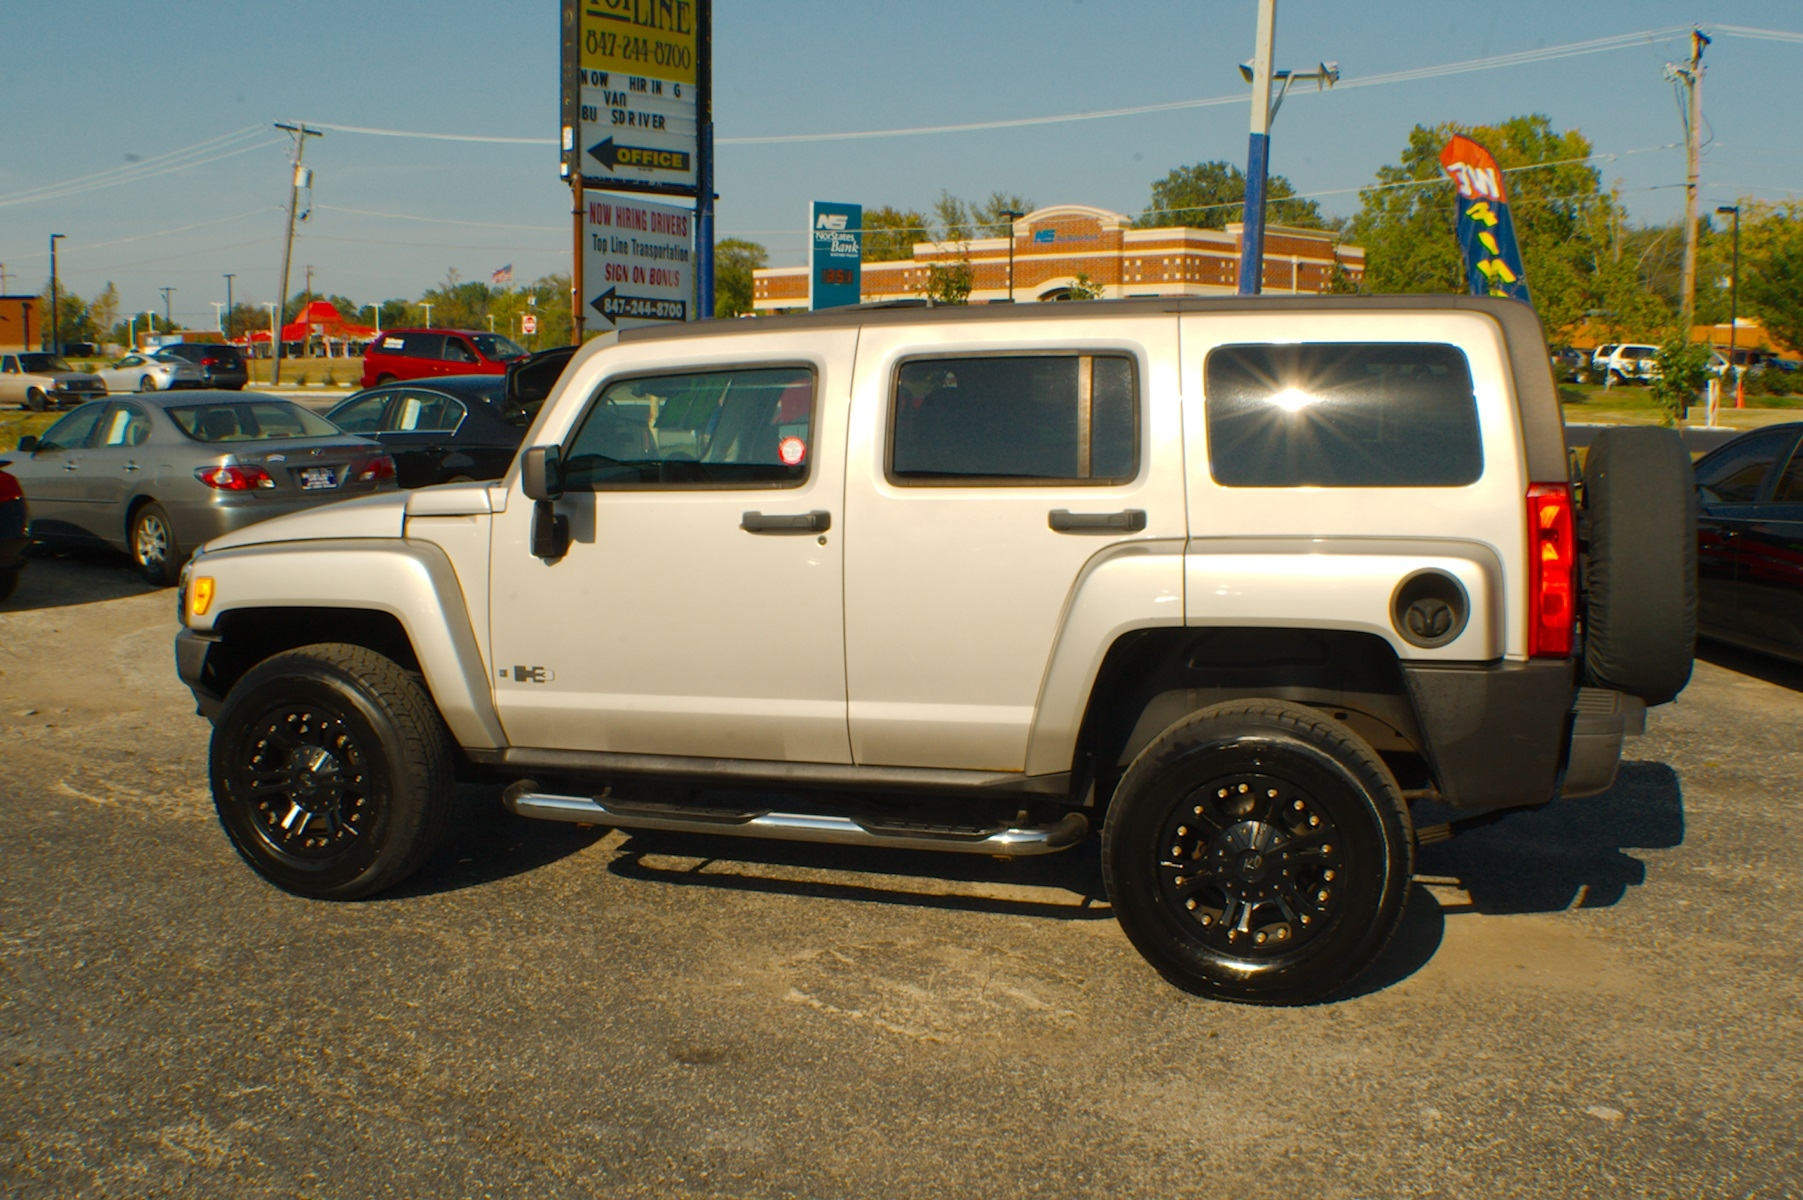 2006 Hummer H3 Pewter 4x4 SUV Used Car Sale Bannockburn Barrington Beach Park